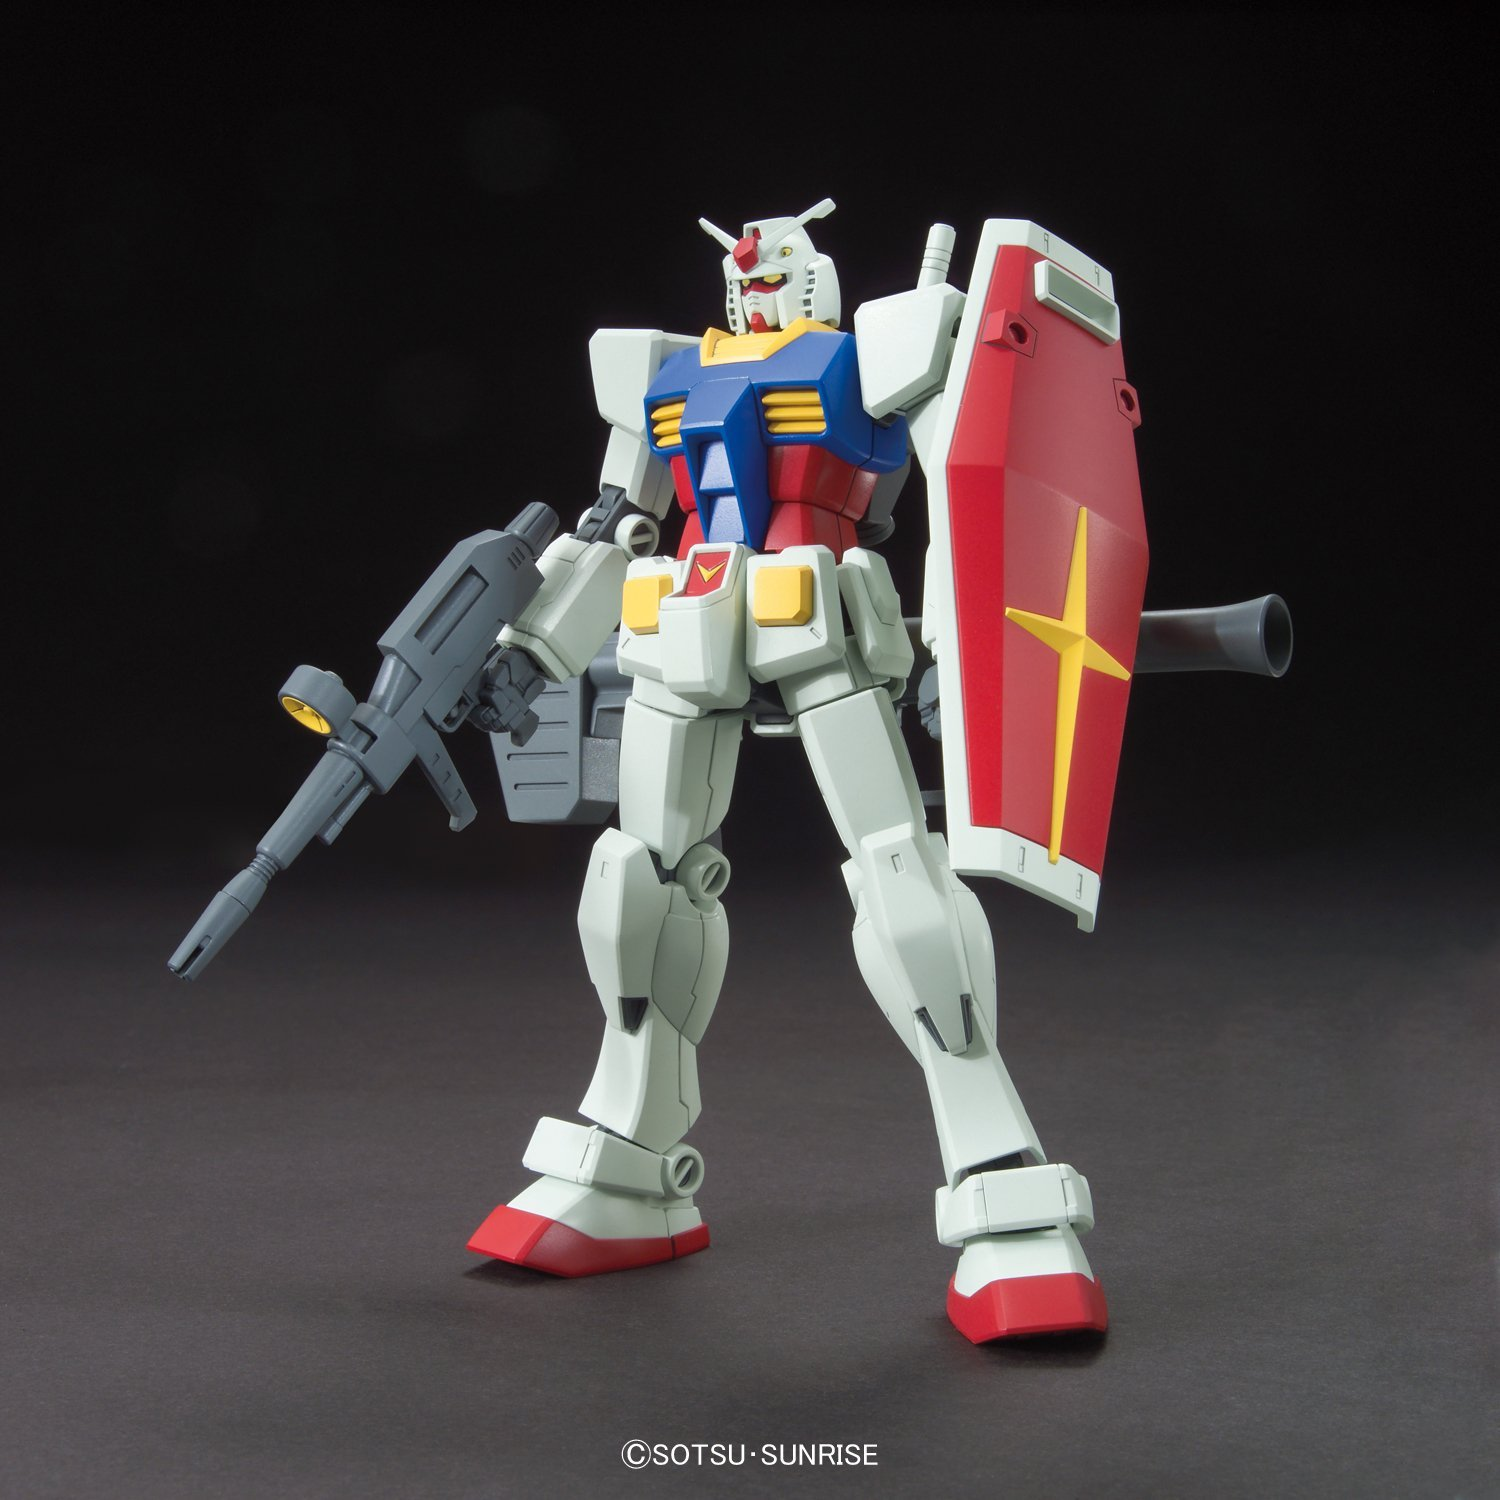 HGUC REVIVE 1/144 RX-78-2 ガンダム [Gundam] 0196716 5057403